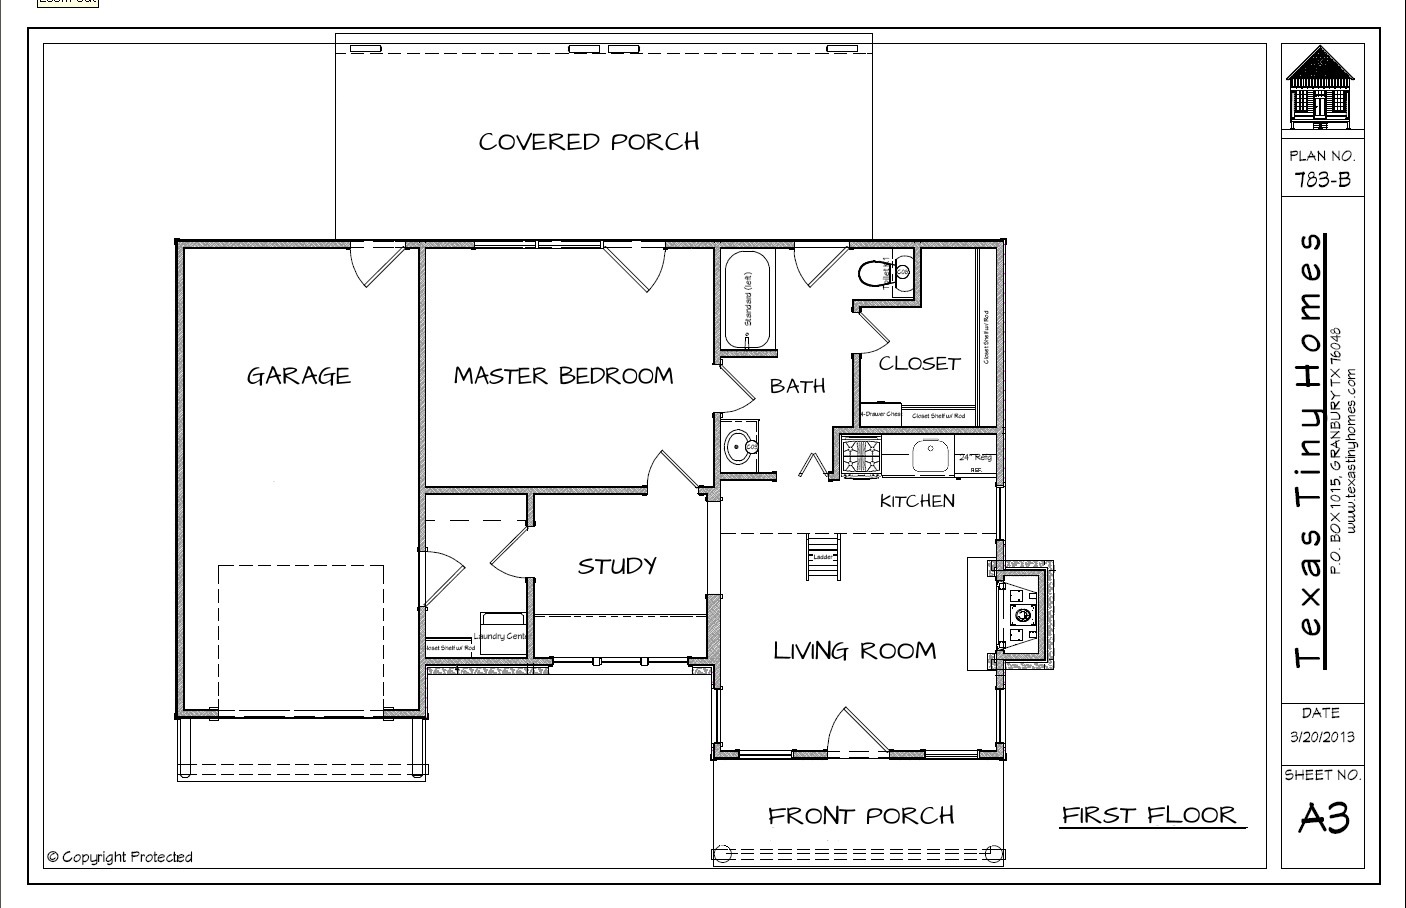 Plan 783 texas tiny homes - Small house plans ...